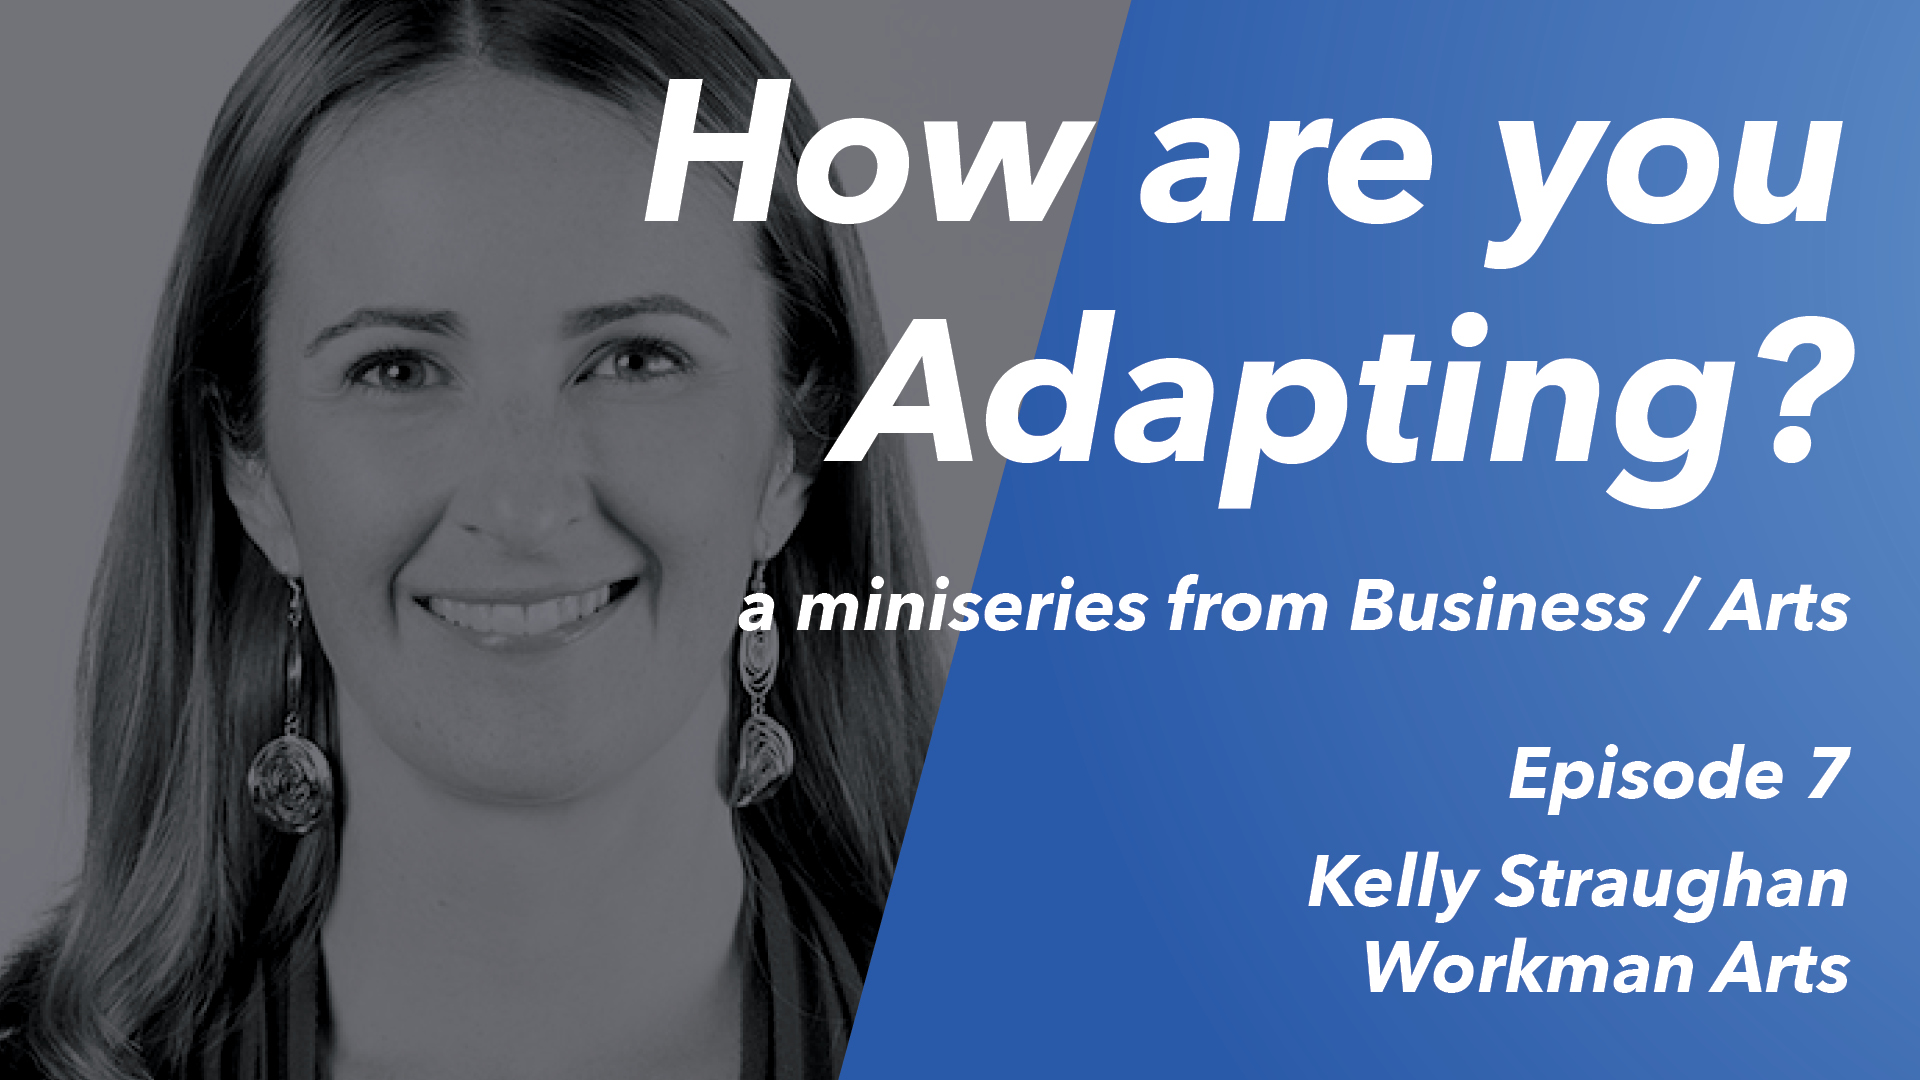 How are you Adapting? Ep 7: Kelly Straughan (Workman Arts)